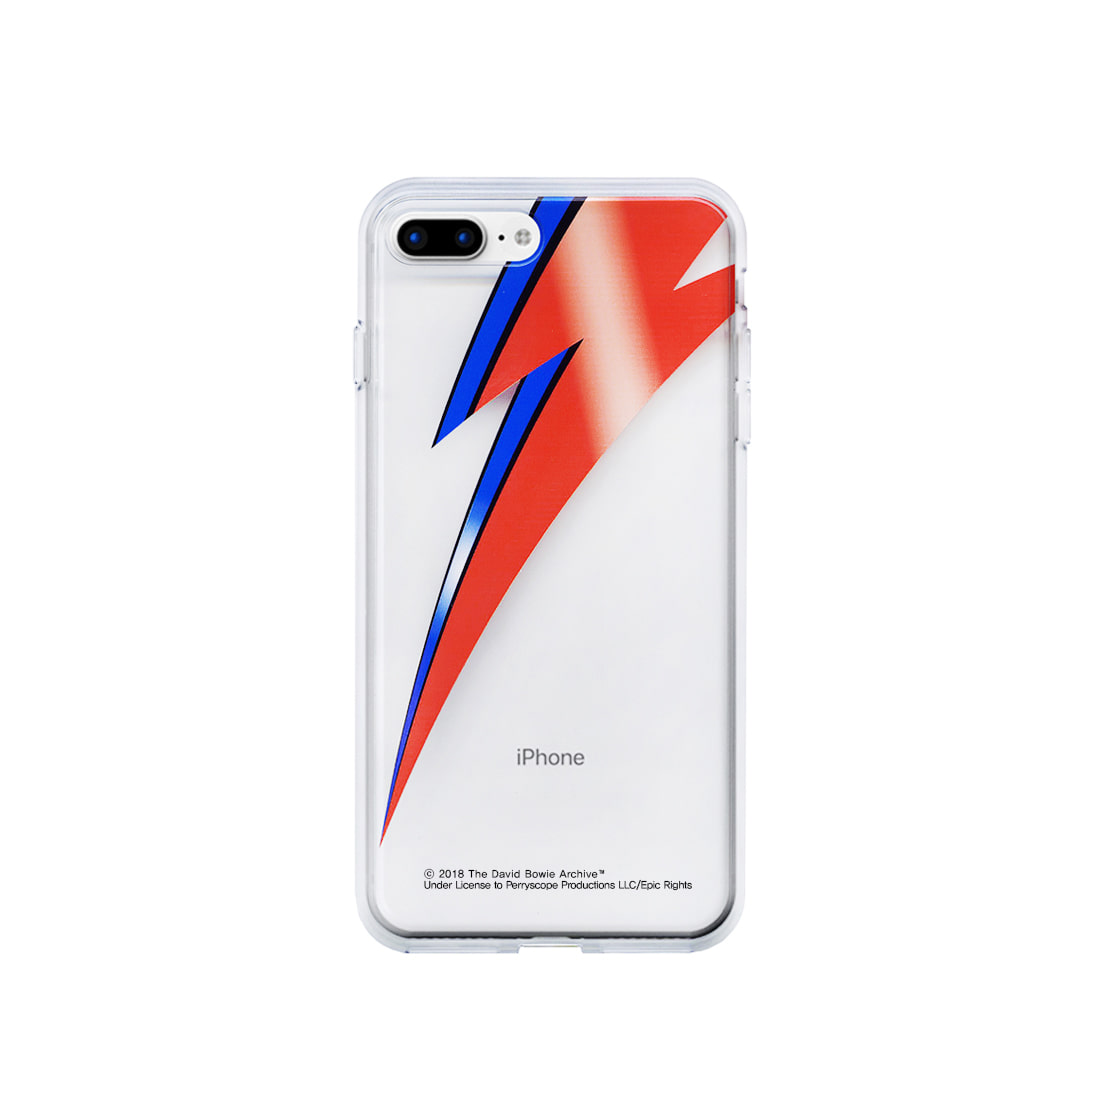 DAVID BOWIE BOLT IPHONE 7 PLUS/8 PLUS CLEAR CASE (BRENT196)